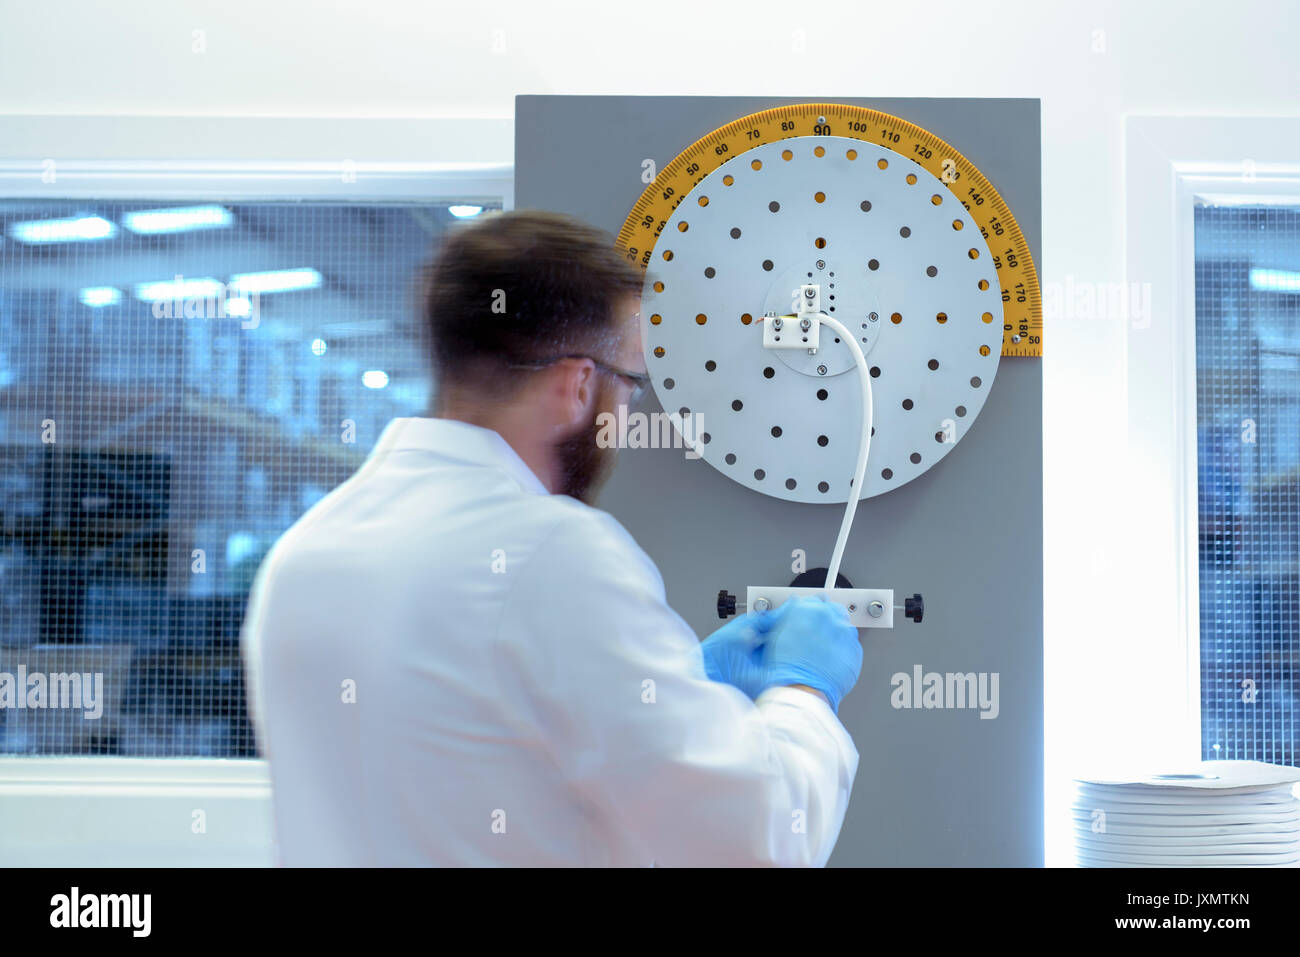 Scientist using cable bending test equipment to test electrical cable in electrical cable laboratory - Stock Image